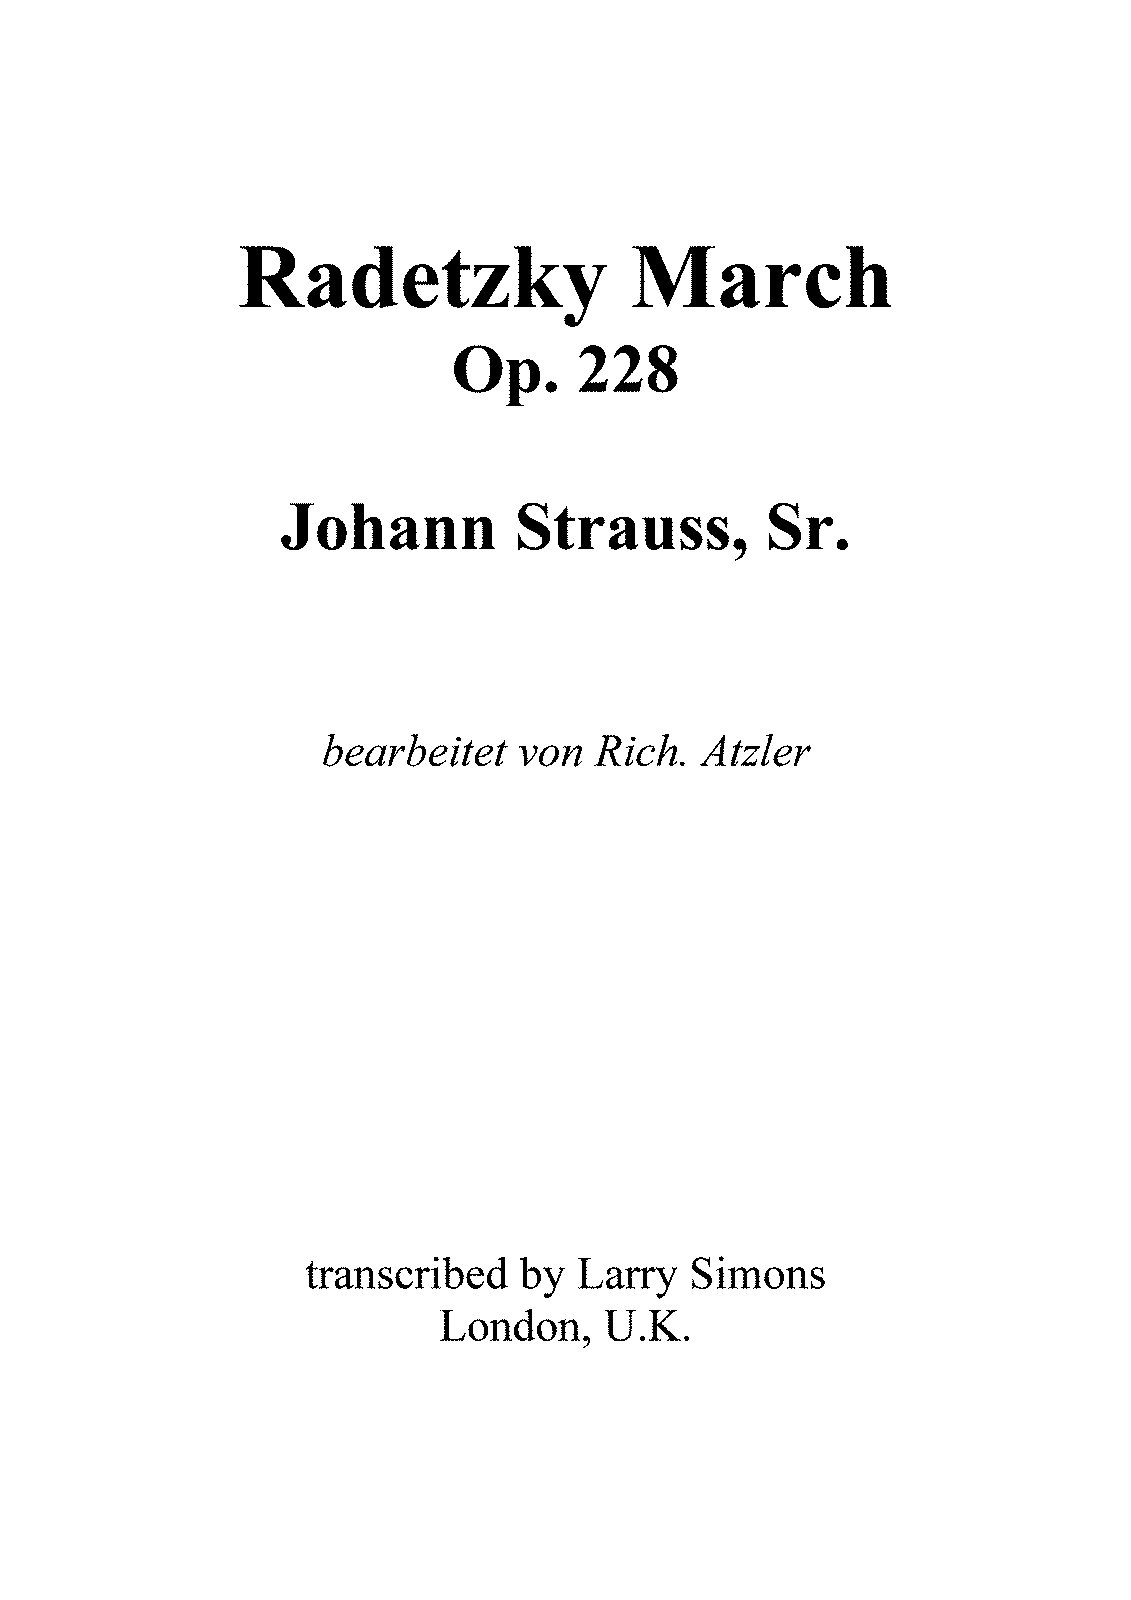 WIMA.762d-Radetzky-March-Atzler.pdf